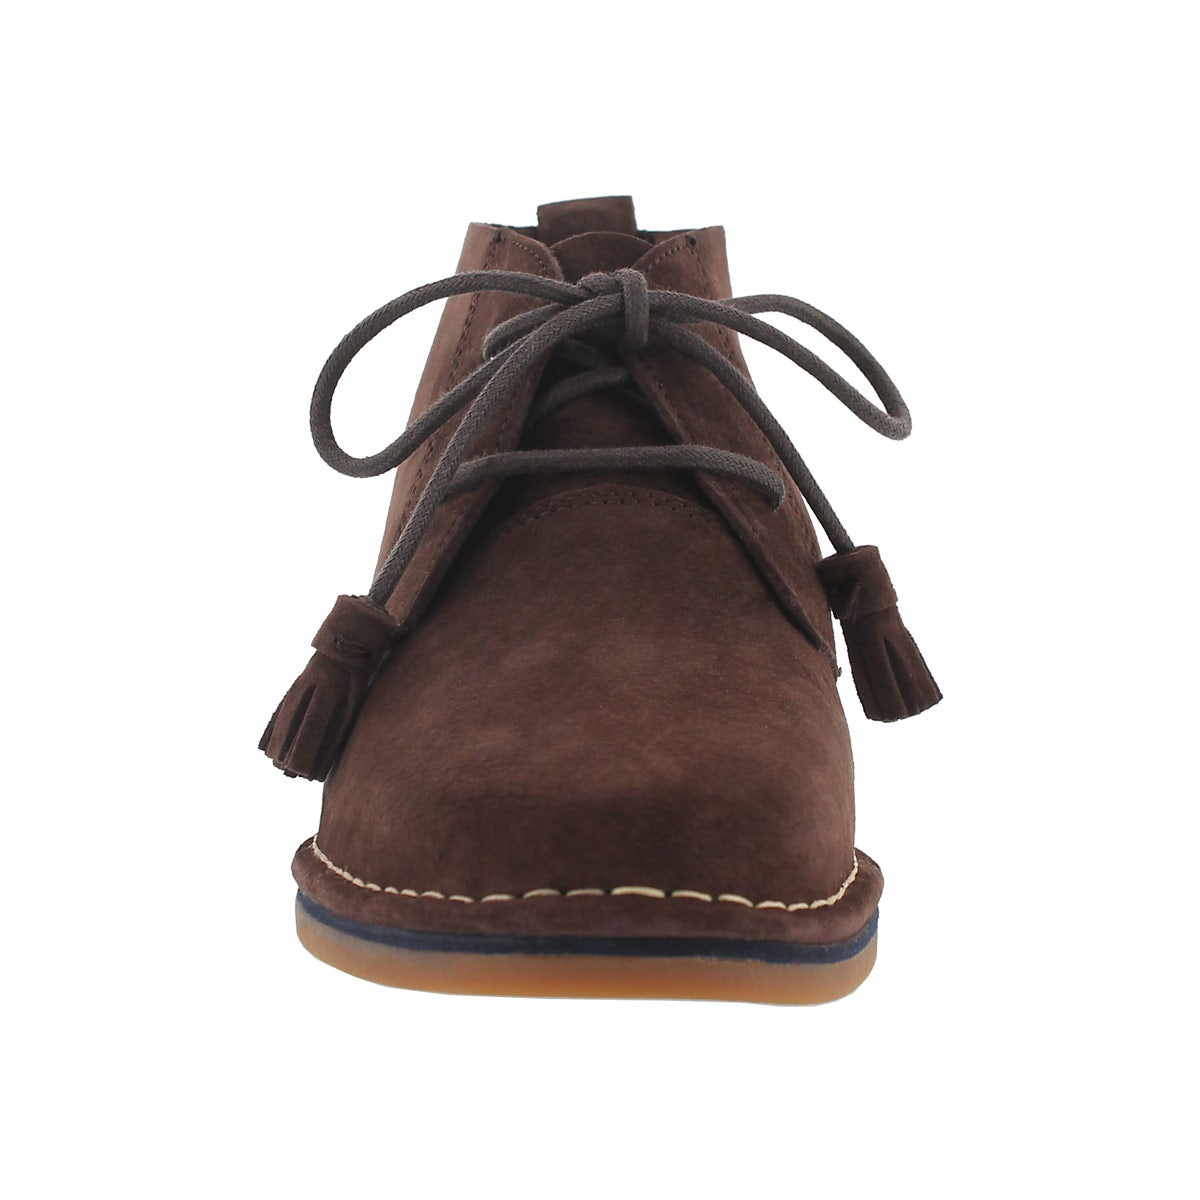 Lds Cyra Catelyn dk brown chukka boot